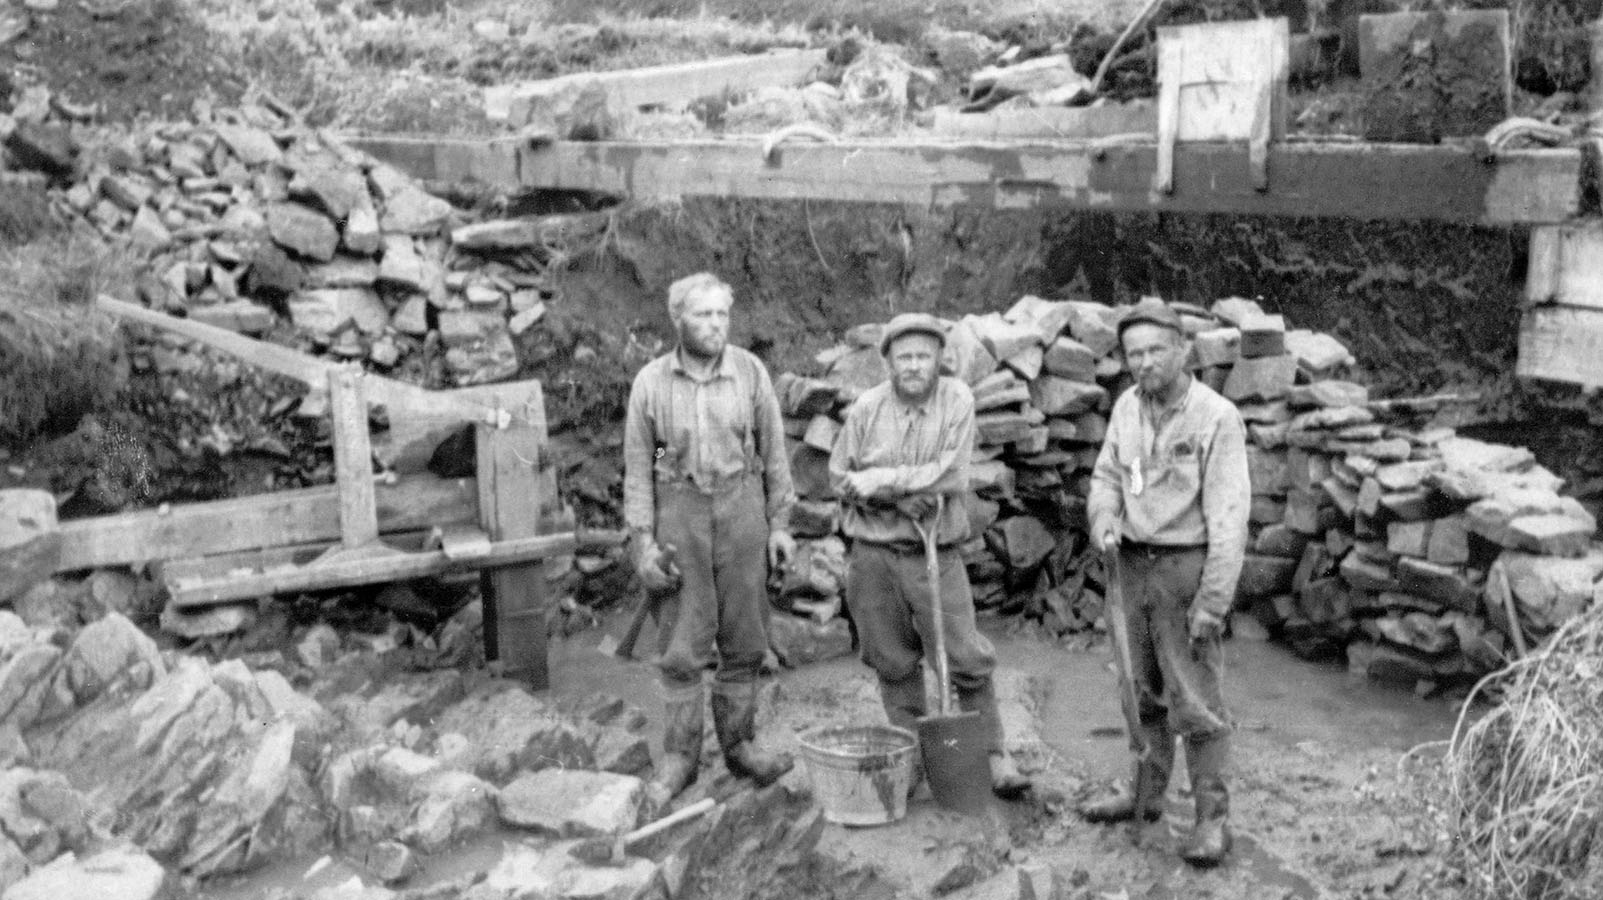 Tree med standing between rocks, two of the men have shovels and the third have a pick in his hand. Behind the men is a tall wooden trough.